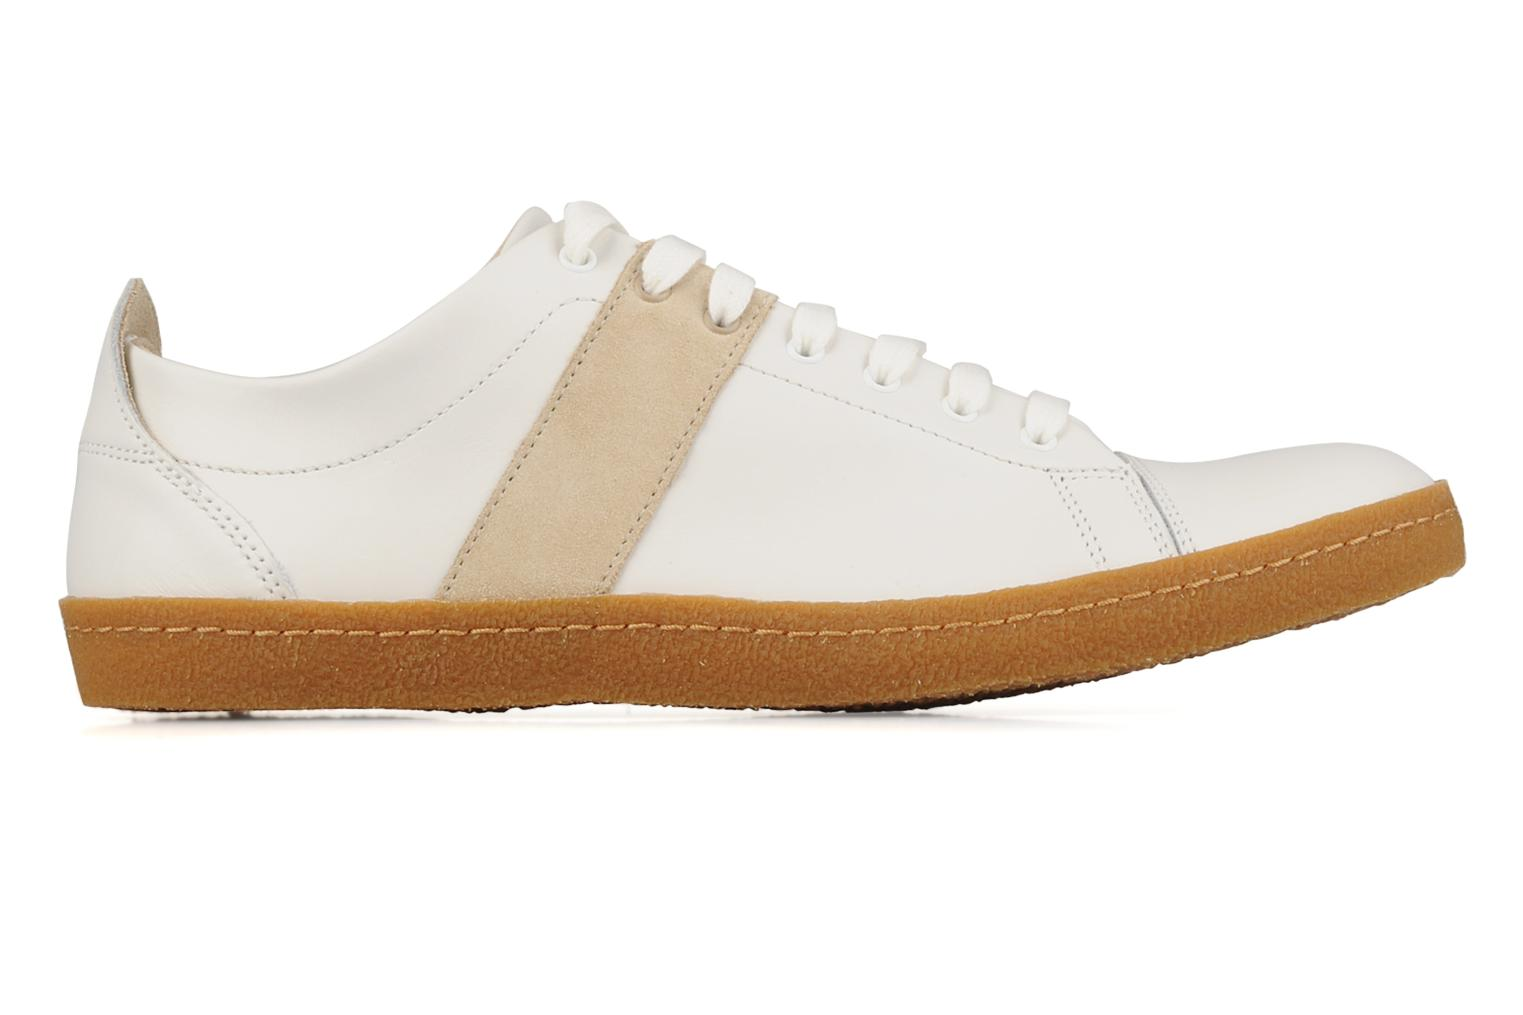 bensimon tennis harrys cuir h trainers in white at sarenza. Black Bedroom Furniture Sets. Home Design Ideas